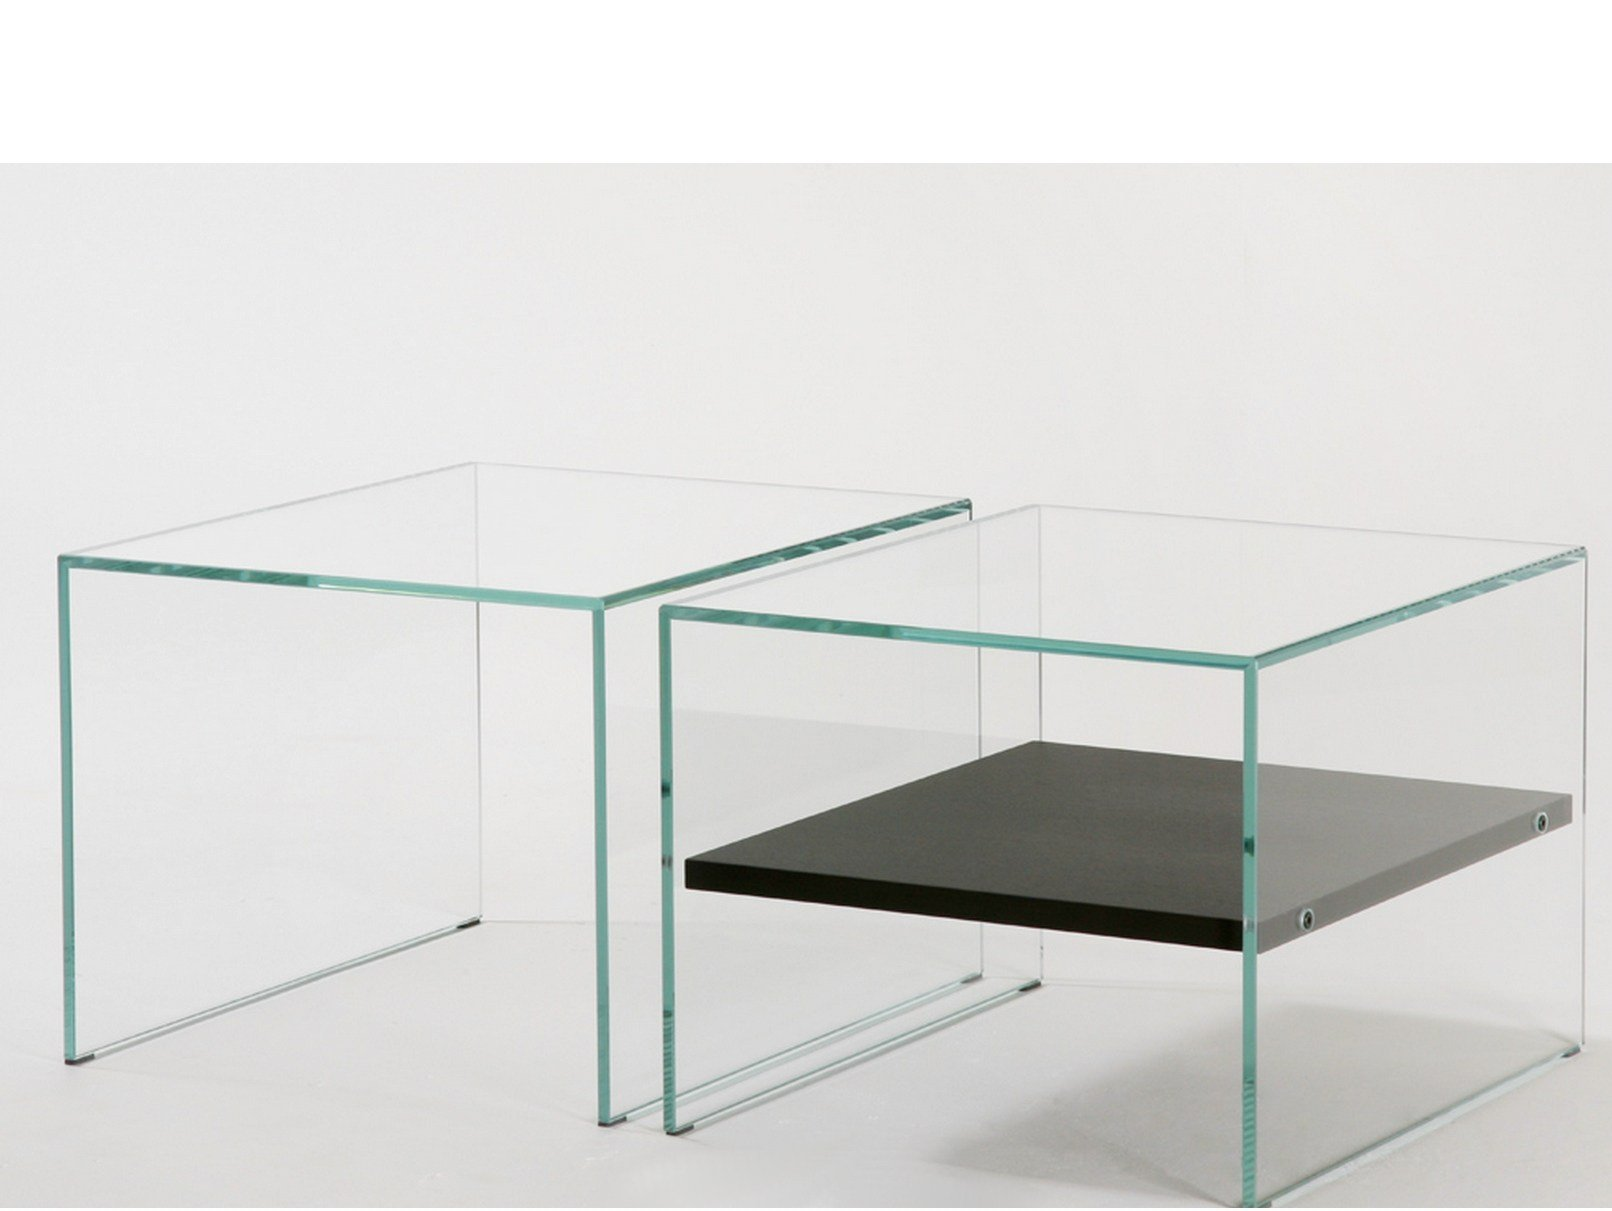 Table basse en verre tremp brothers zen 2 by adentro - Table basse en verre trempe ...